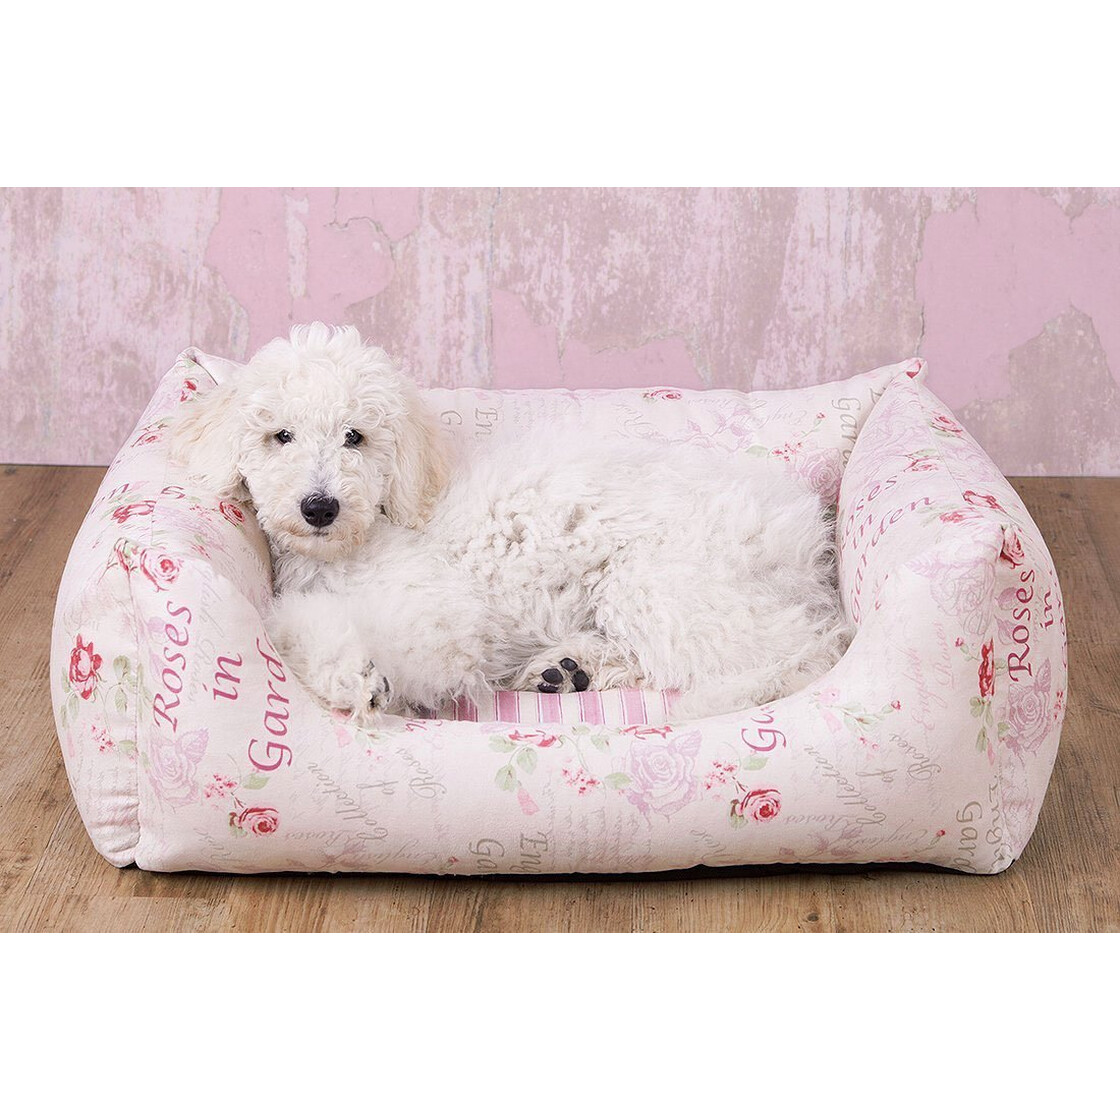 Vintage hundebett emilia shabby chic 46 95 for Shabby chic dog